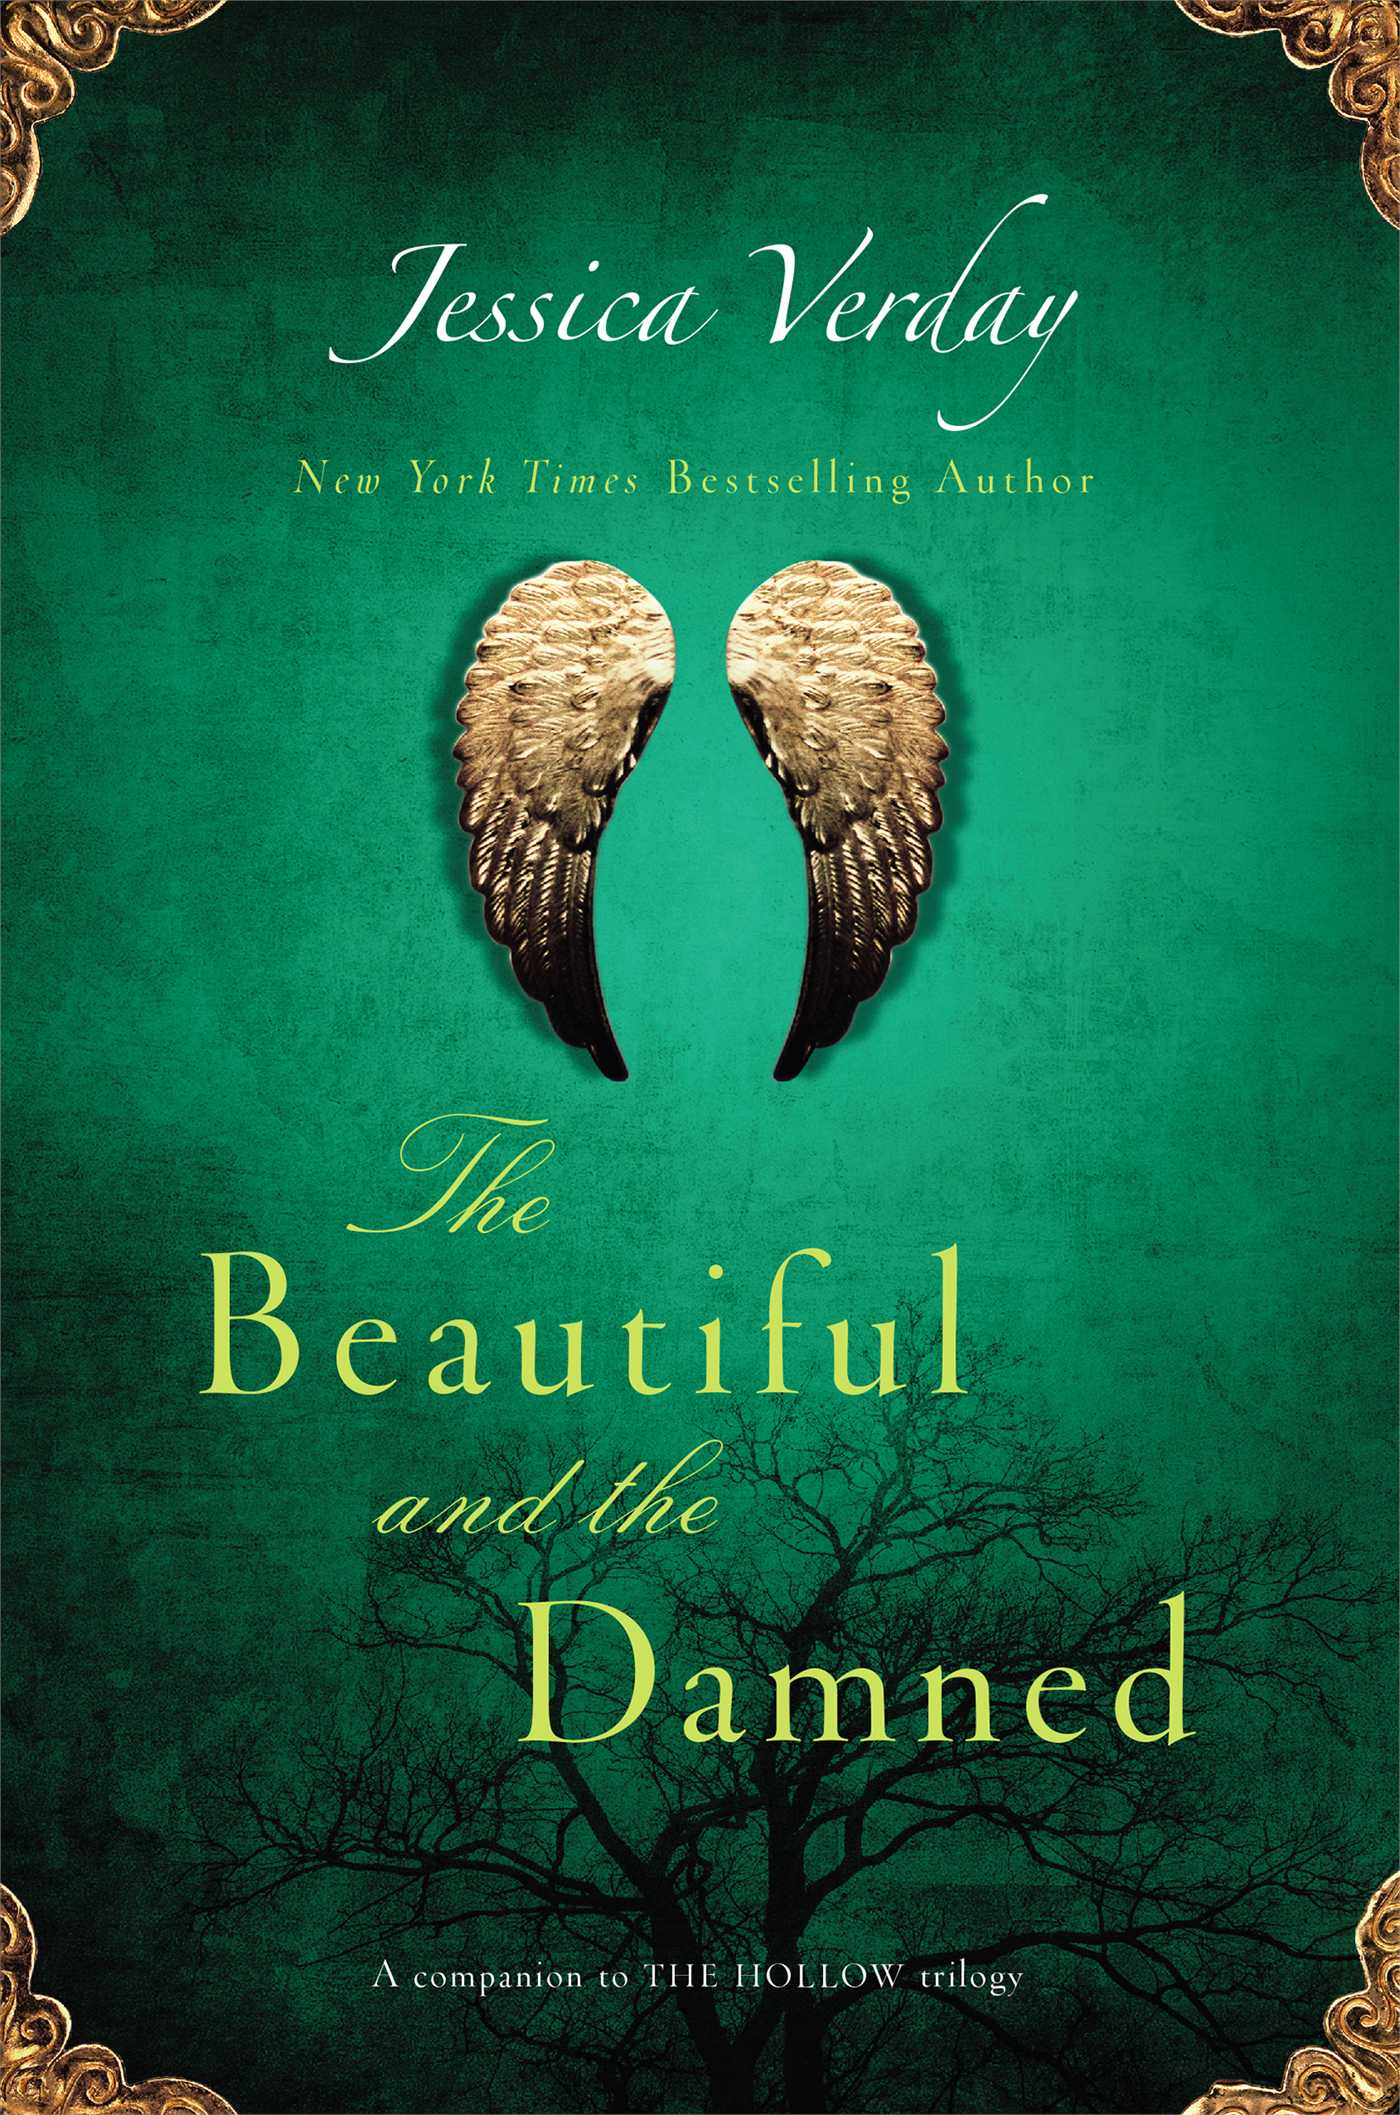 Beautiful Book Covers Goodreads : Jessica verday official publisher page simon